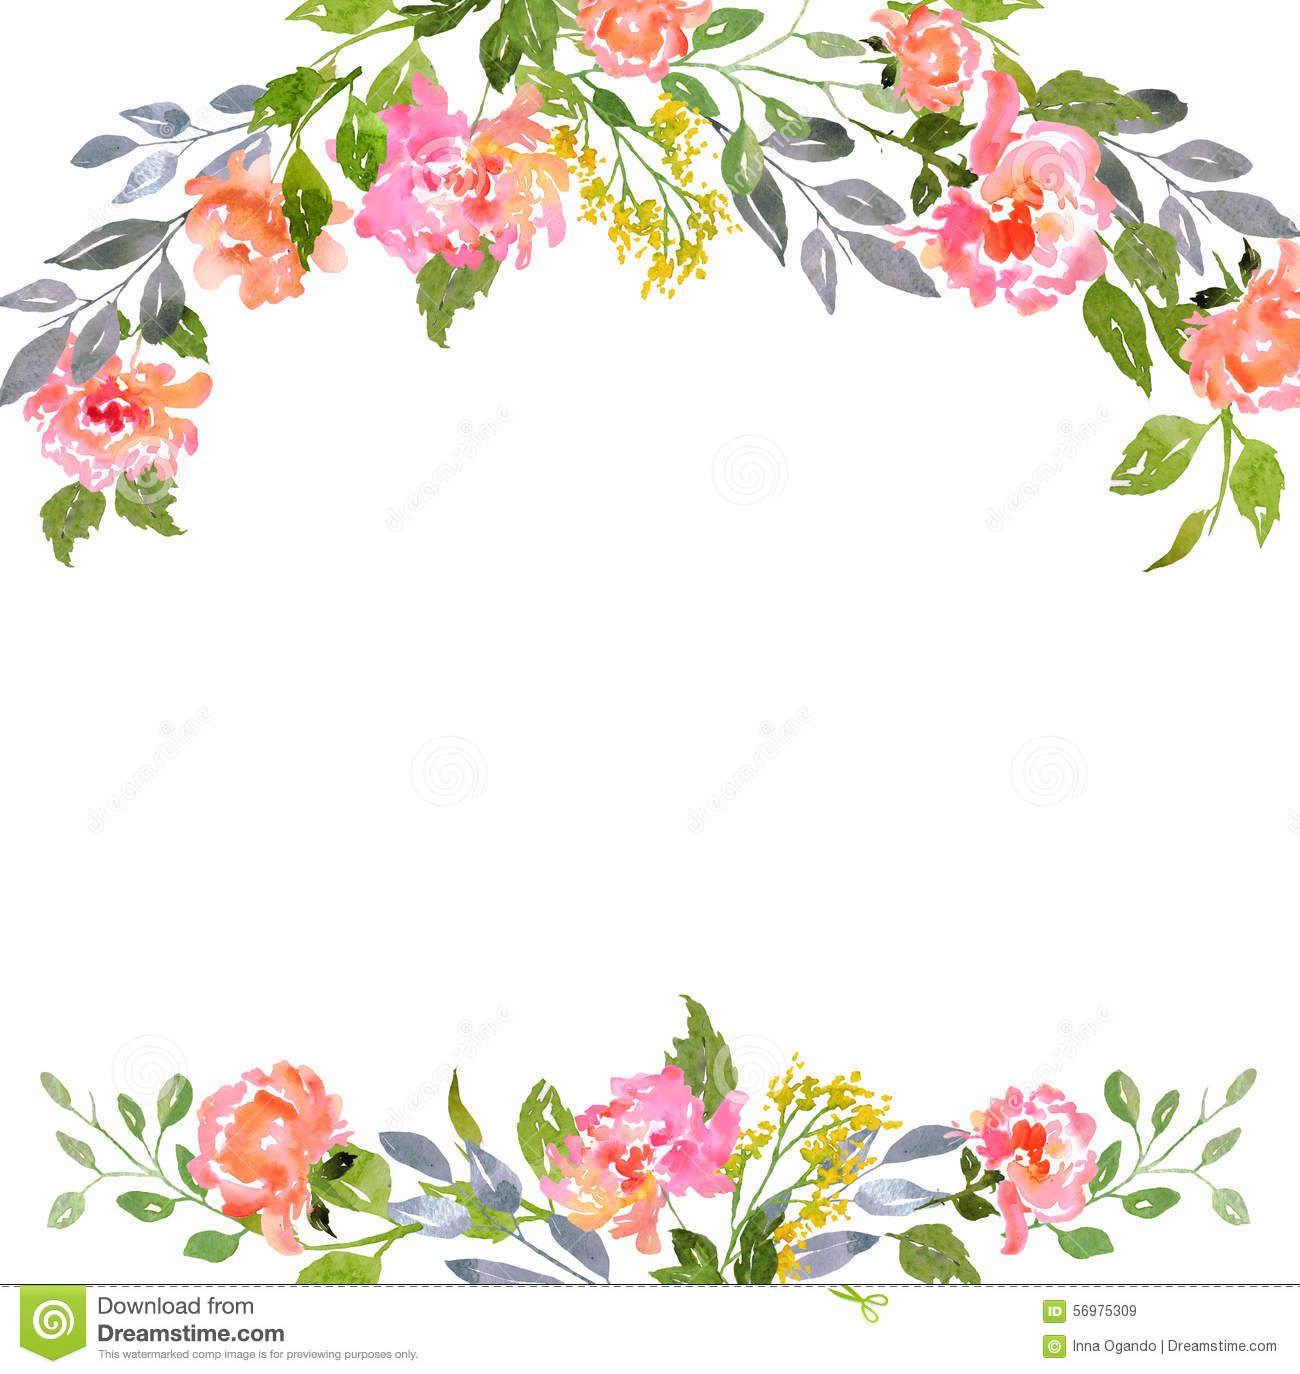 Watercolor floral card template Floral cards, Floral